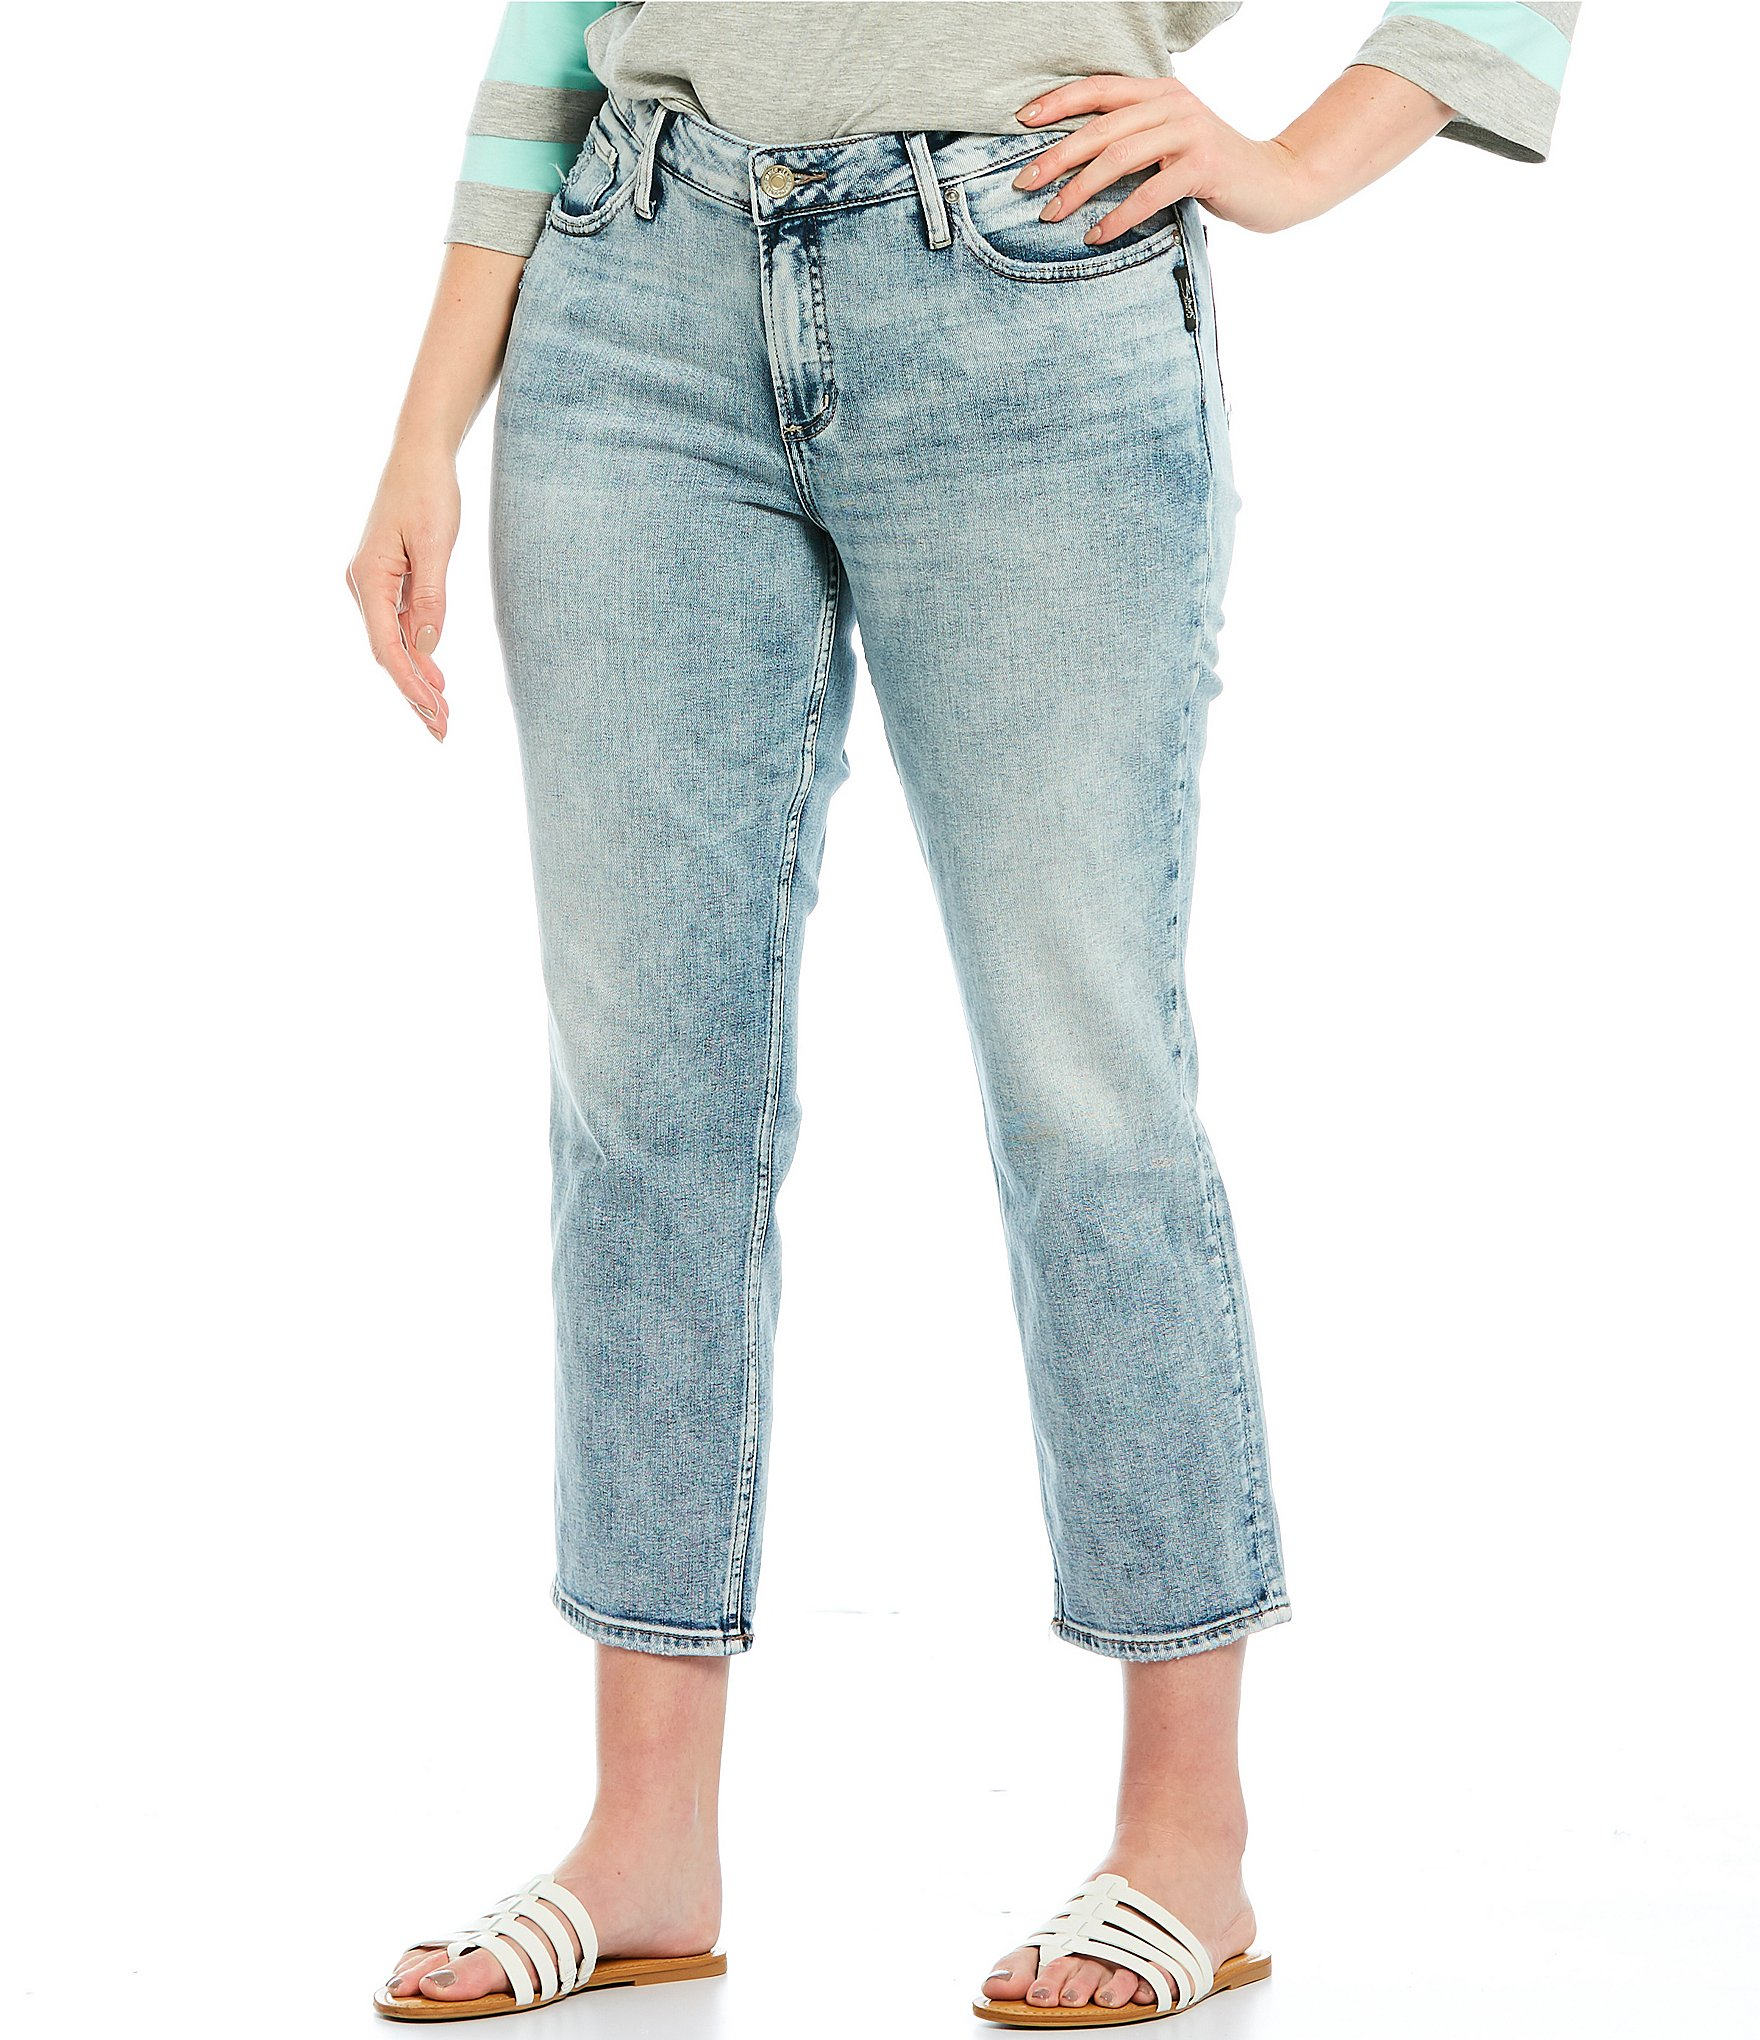 b59eaa63a2a Silver Jeans Co. Plus Size Women s Clothing